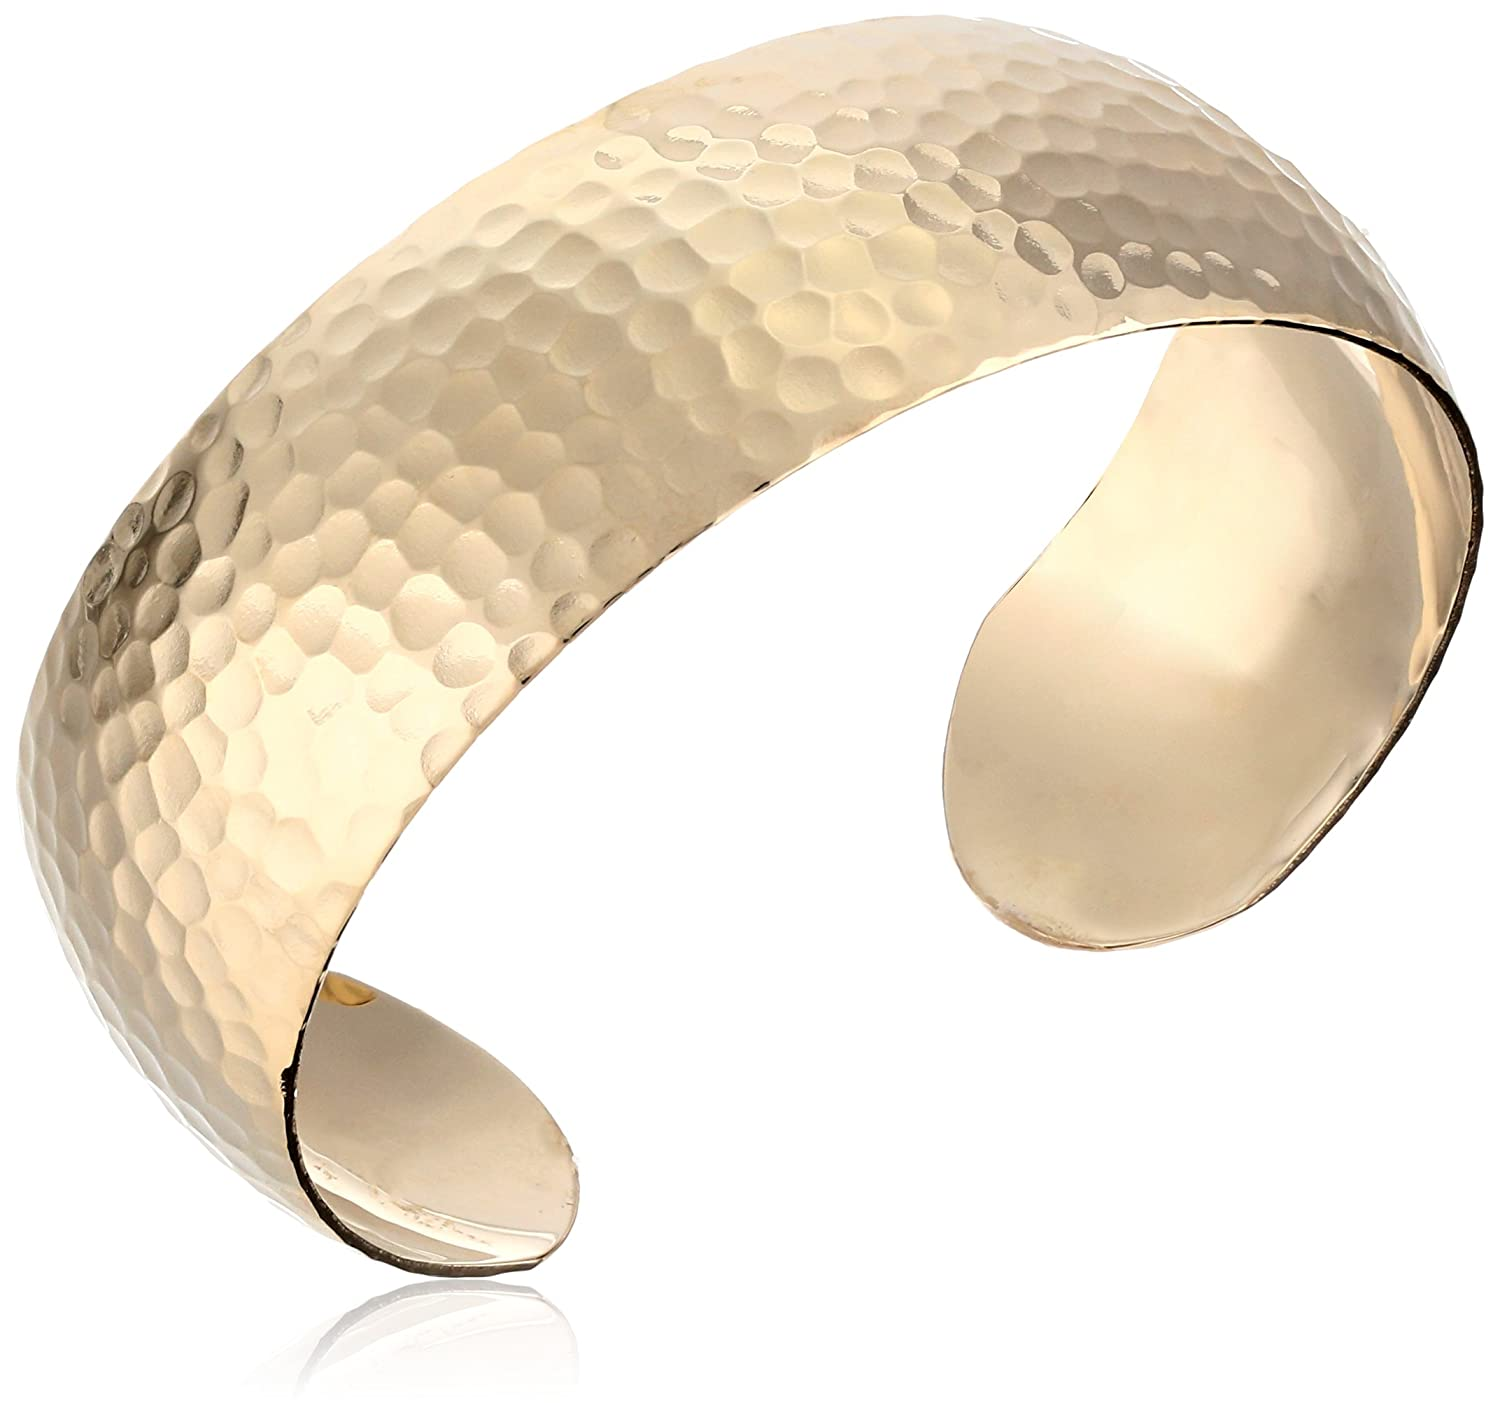 14k Gold-Filled Wide Hammered Cuff Bracelet